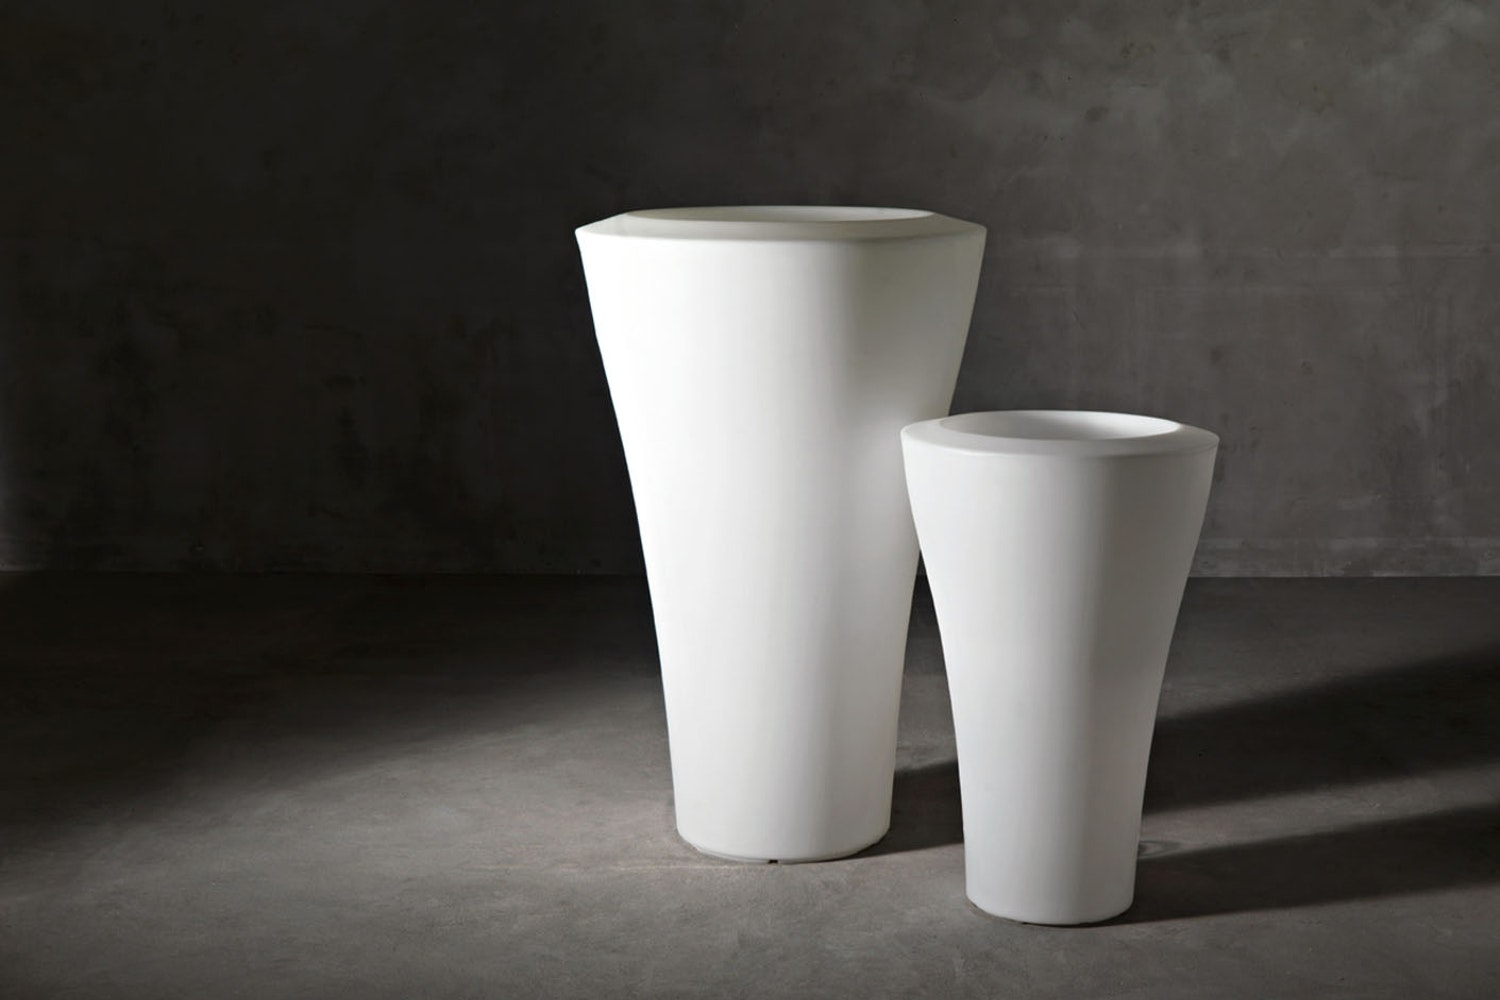 Ming High Pot Family by Rodolfo Dordoni for Serralunga